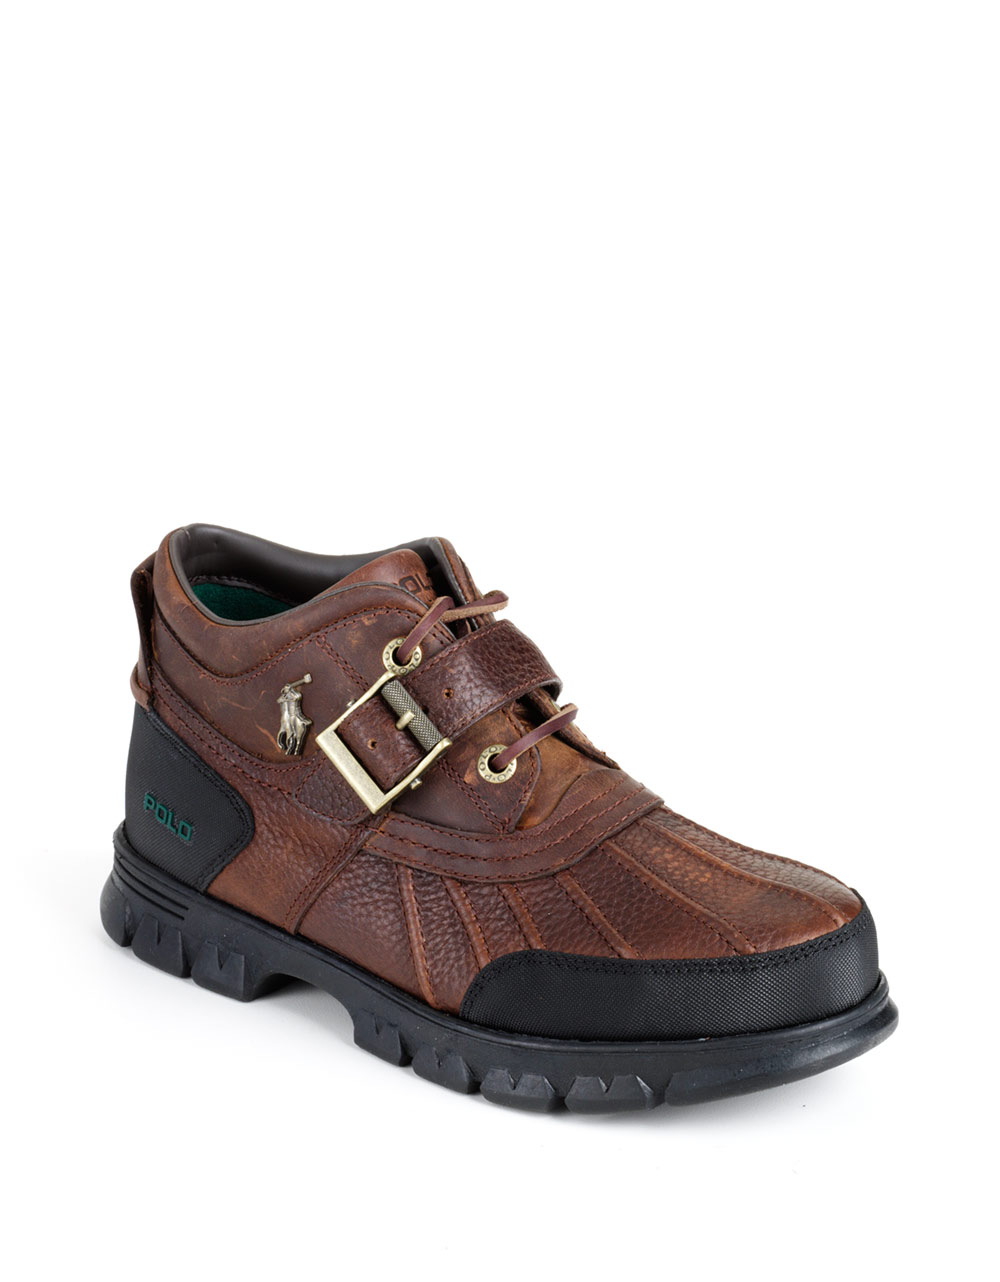 polo ralph lauren dover iii leather hiking boots in for men m br m br lyst. Black Bedroom Furniture Sets. Home Design Ideas